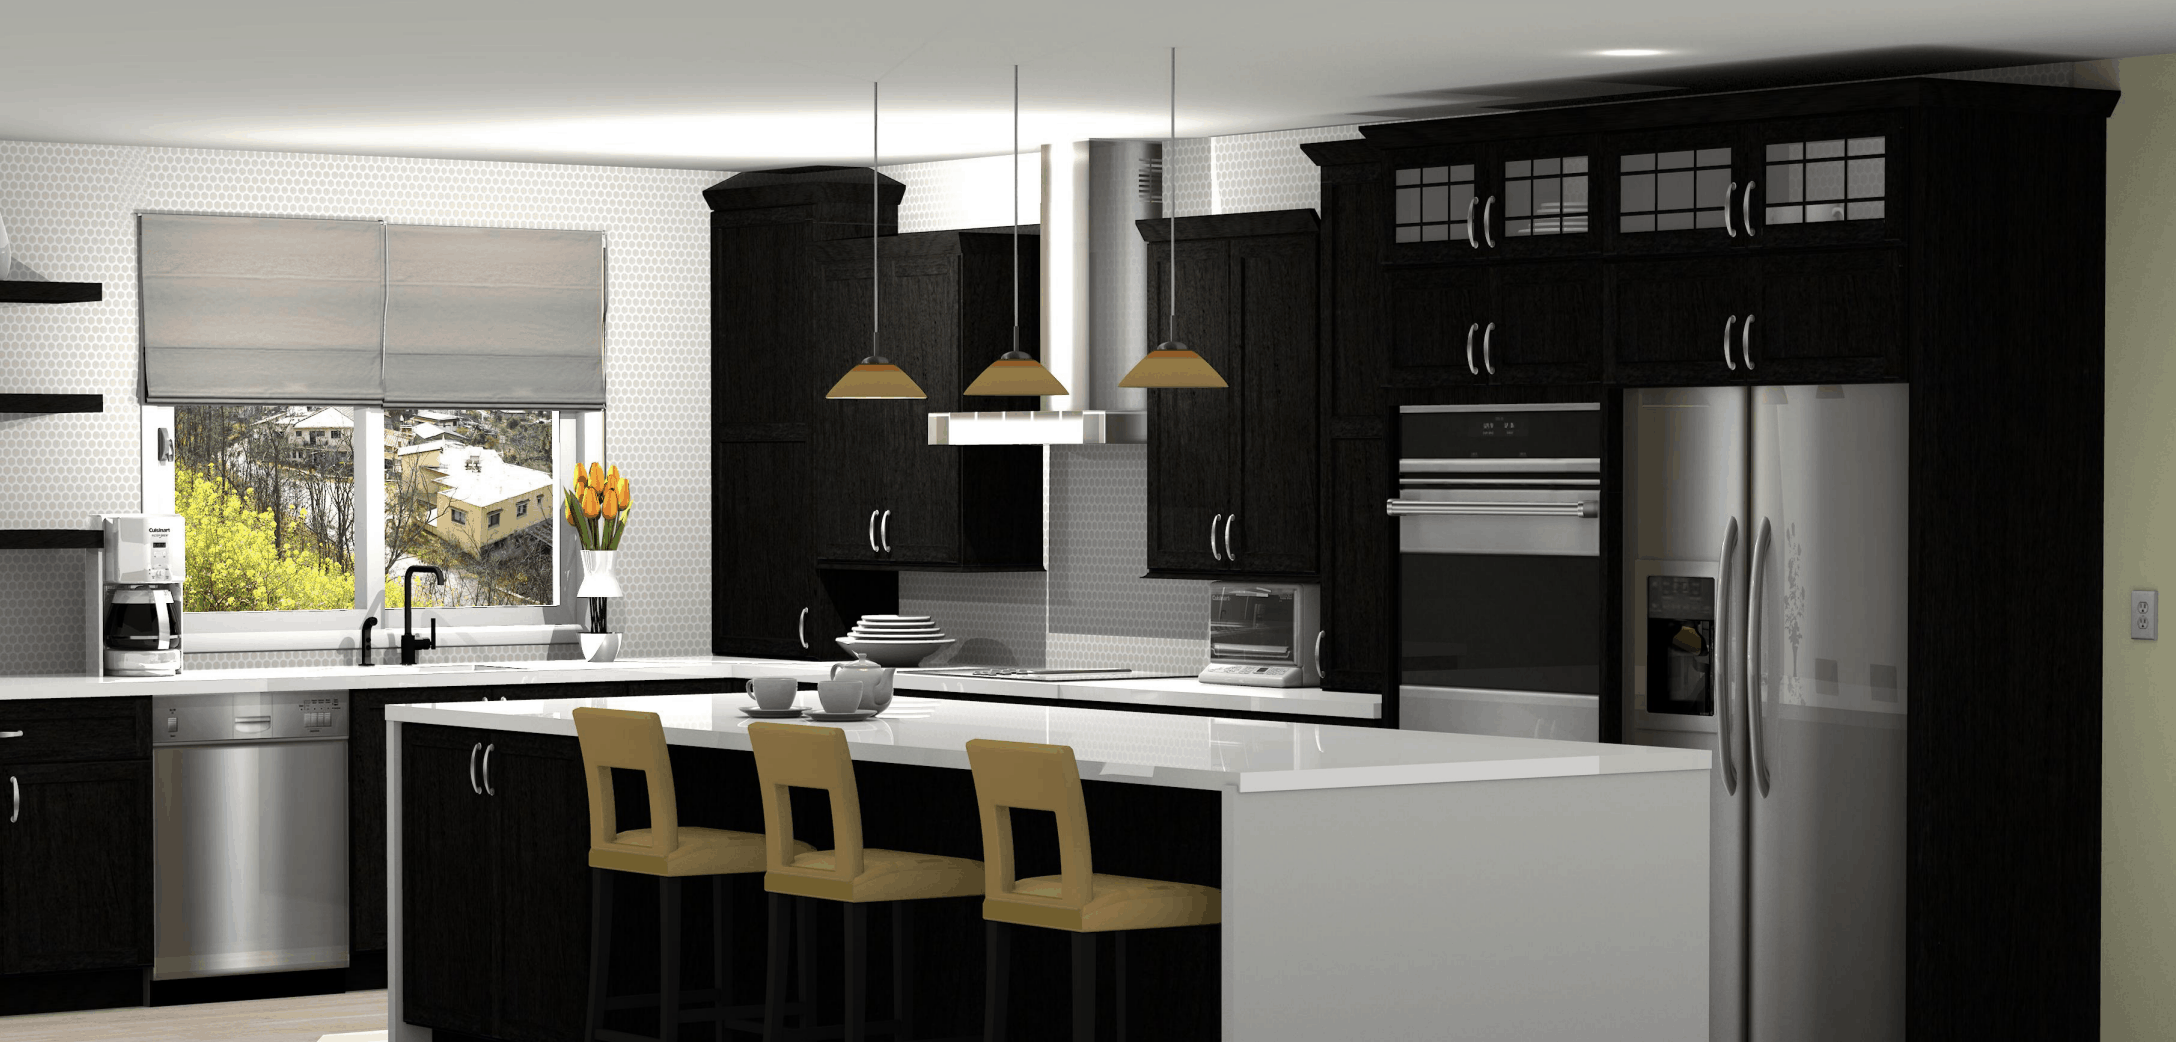 Rendering Of Modern Kitchen Design Using Prokitchen Software Interior Design Software Best Buy